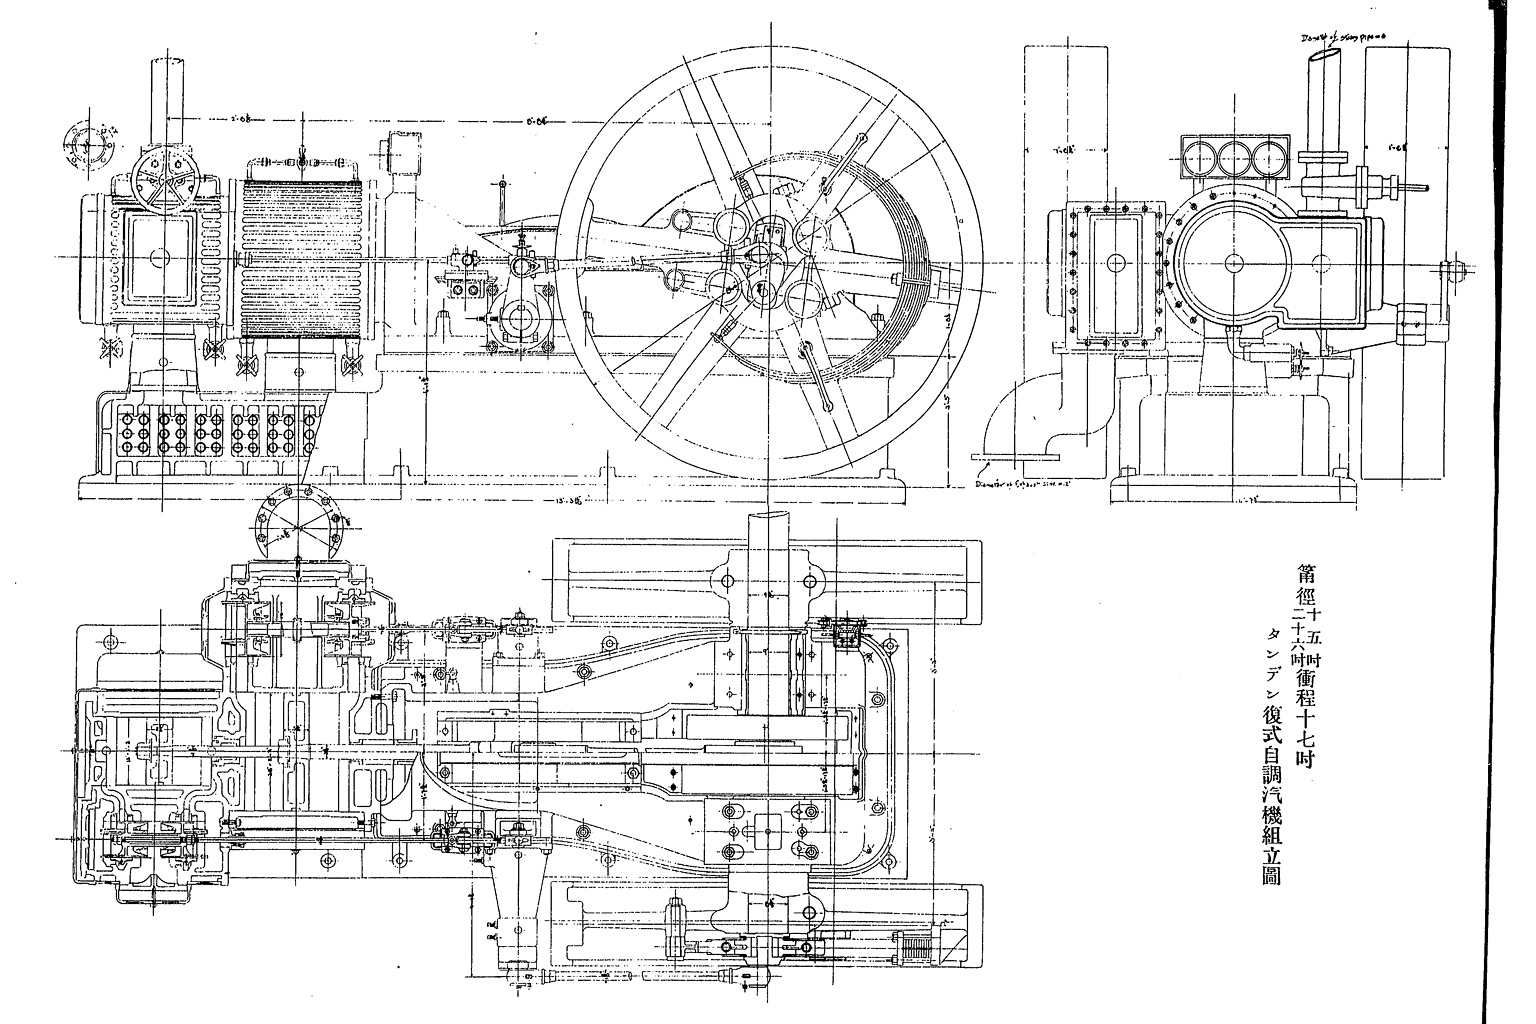 assembly drawing of tandem self